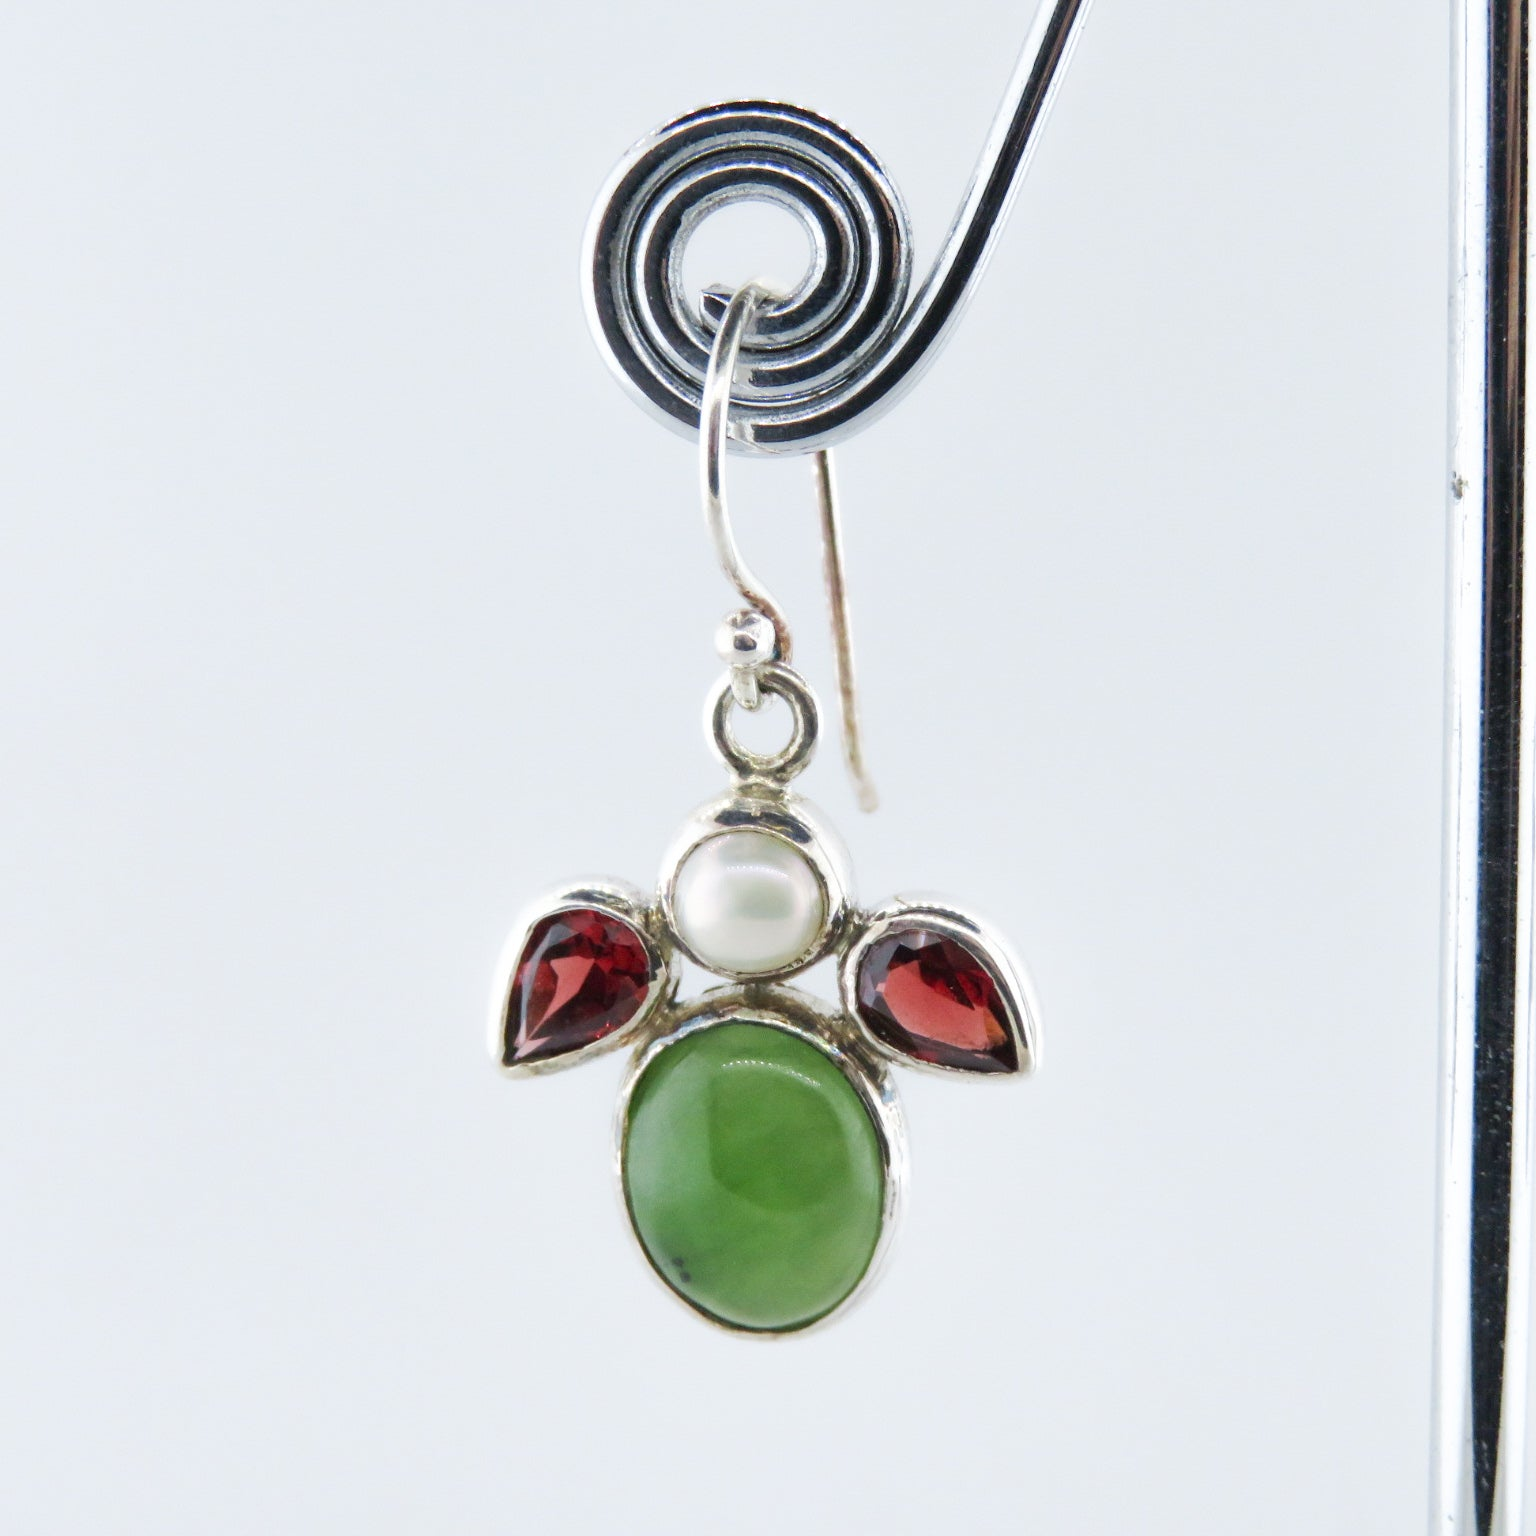 Nephrite Sterling Silver Earrings with Garnet and Fresh Water Pearls